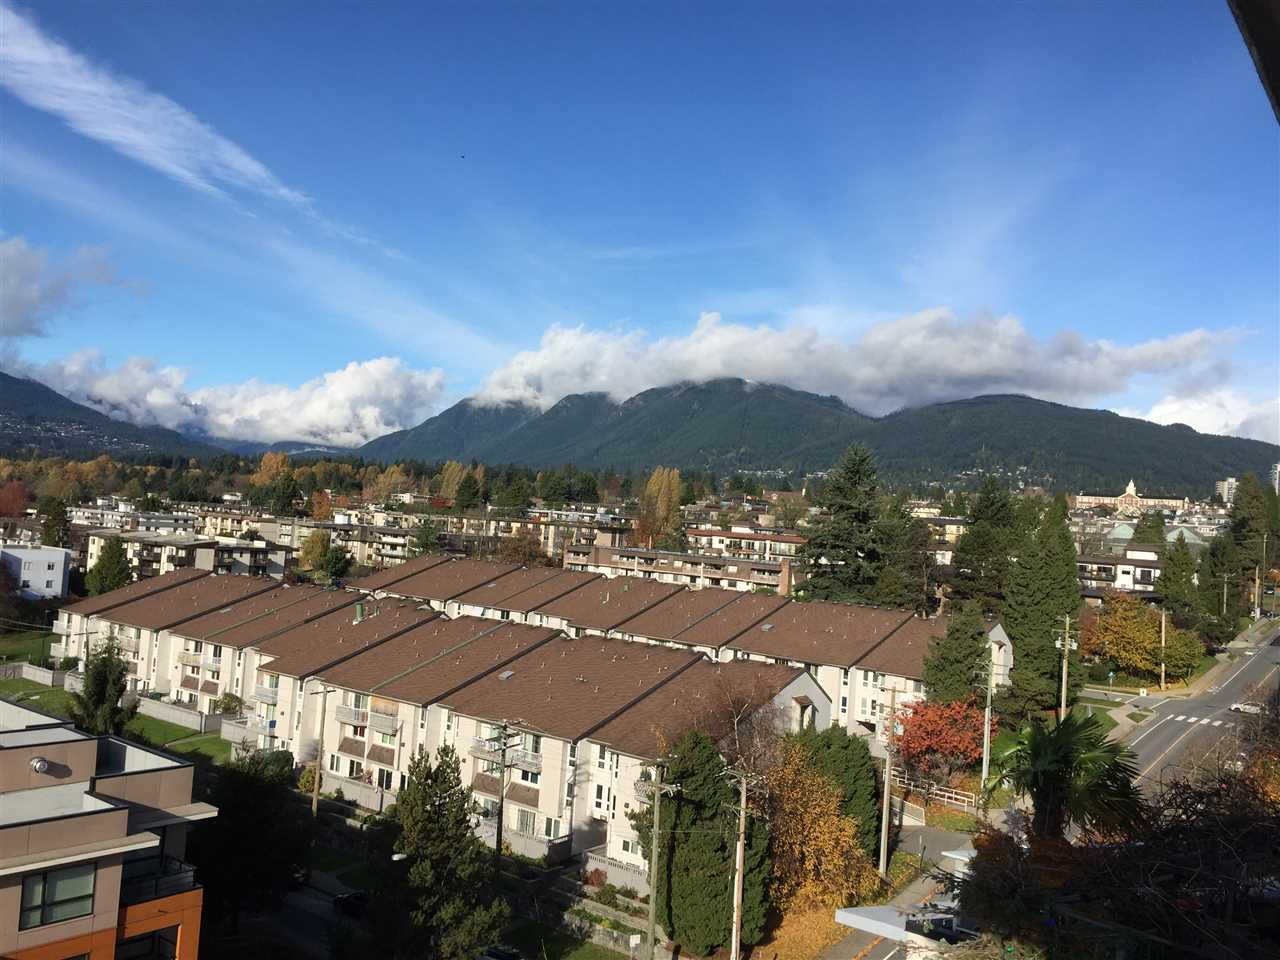 Photo 8: Photos: 1008 175 W 1ST STREET in North Vancouver: Lower Lonsdale Condo for sale : MLS®# R2015421